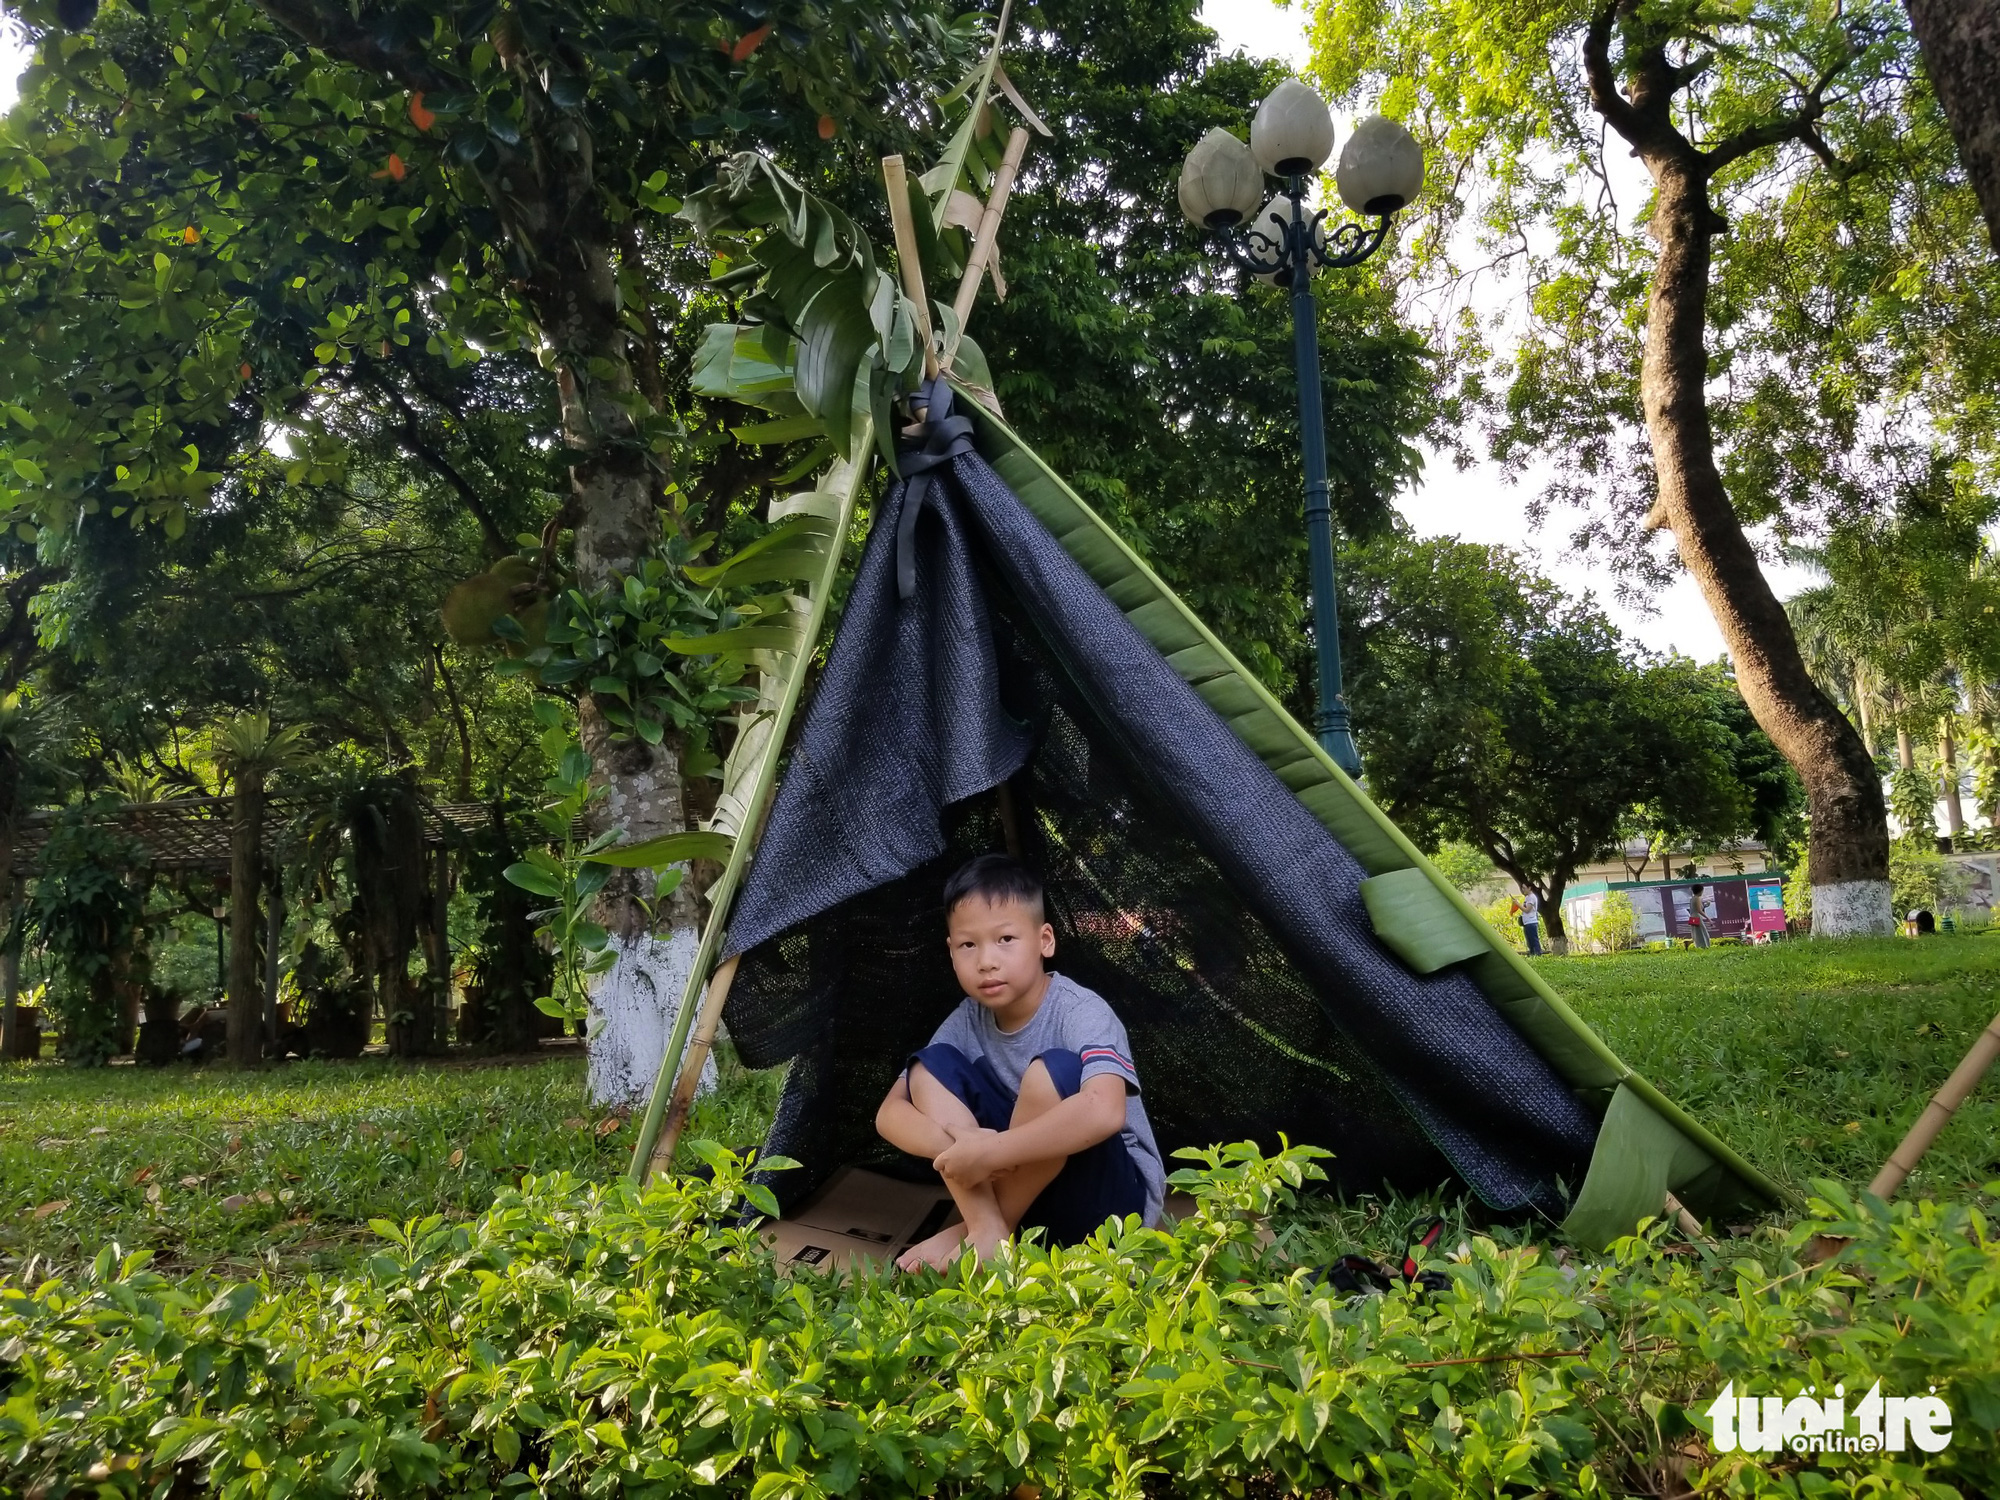 A boy sits in a tent made from banana leaves at the 'Kingdom of Recycled Materials' event in Hanoi, Vietnam, May 31, 2020. Photo: Ha Thanh / Tuoi Tre